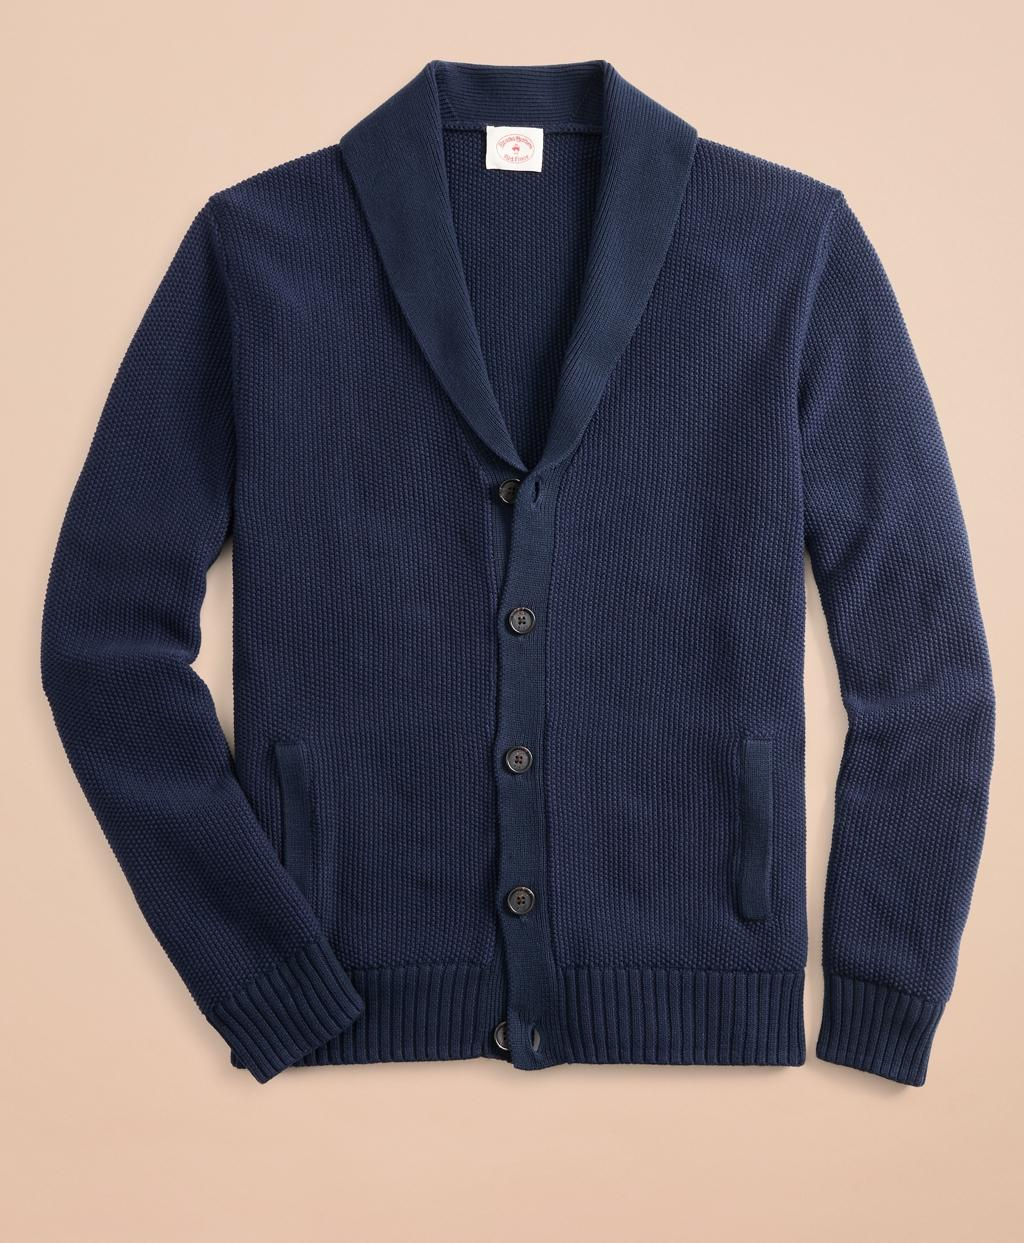 be68176ec Lyst - Brooks Brothers Shawl-collar Cardigan in Blue for Men